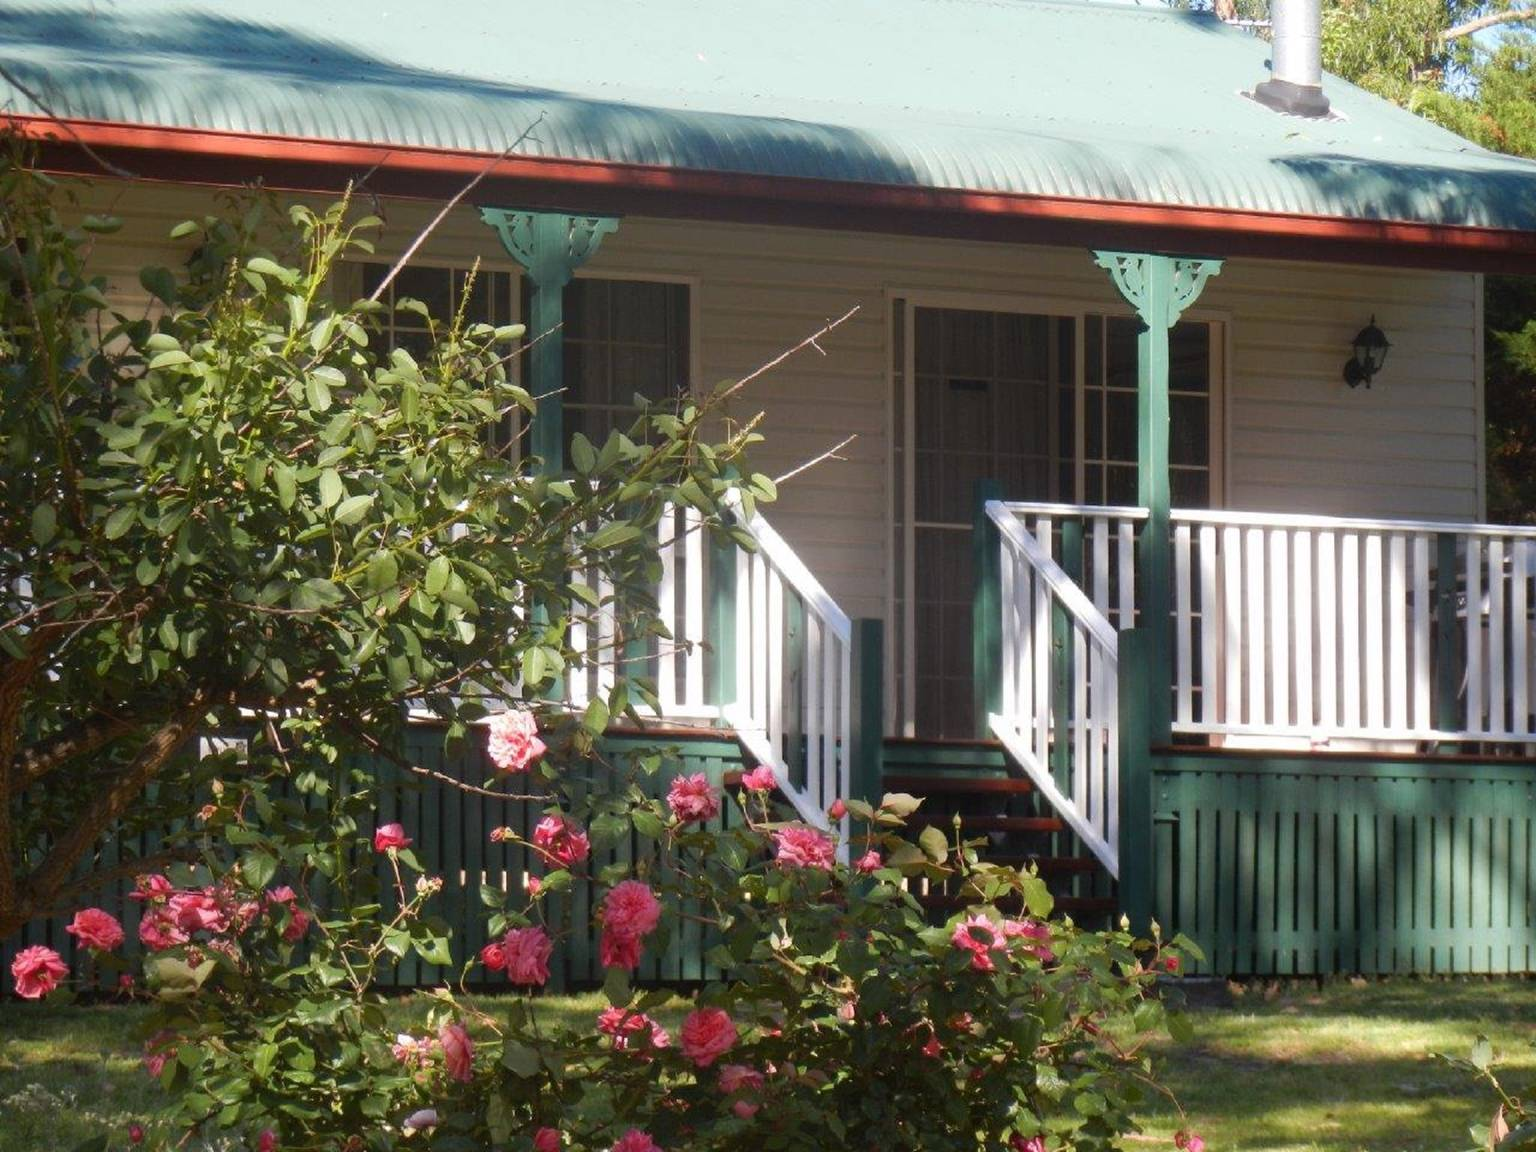 A close up of a flower garden in front of a building at Cairns B & B.